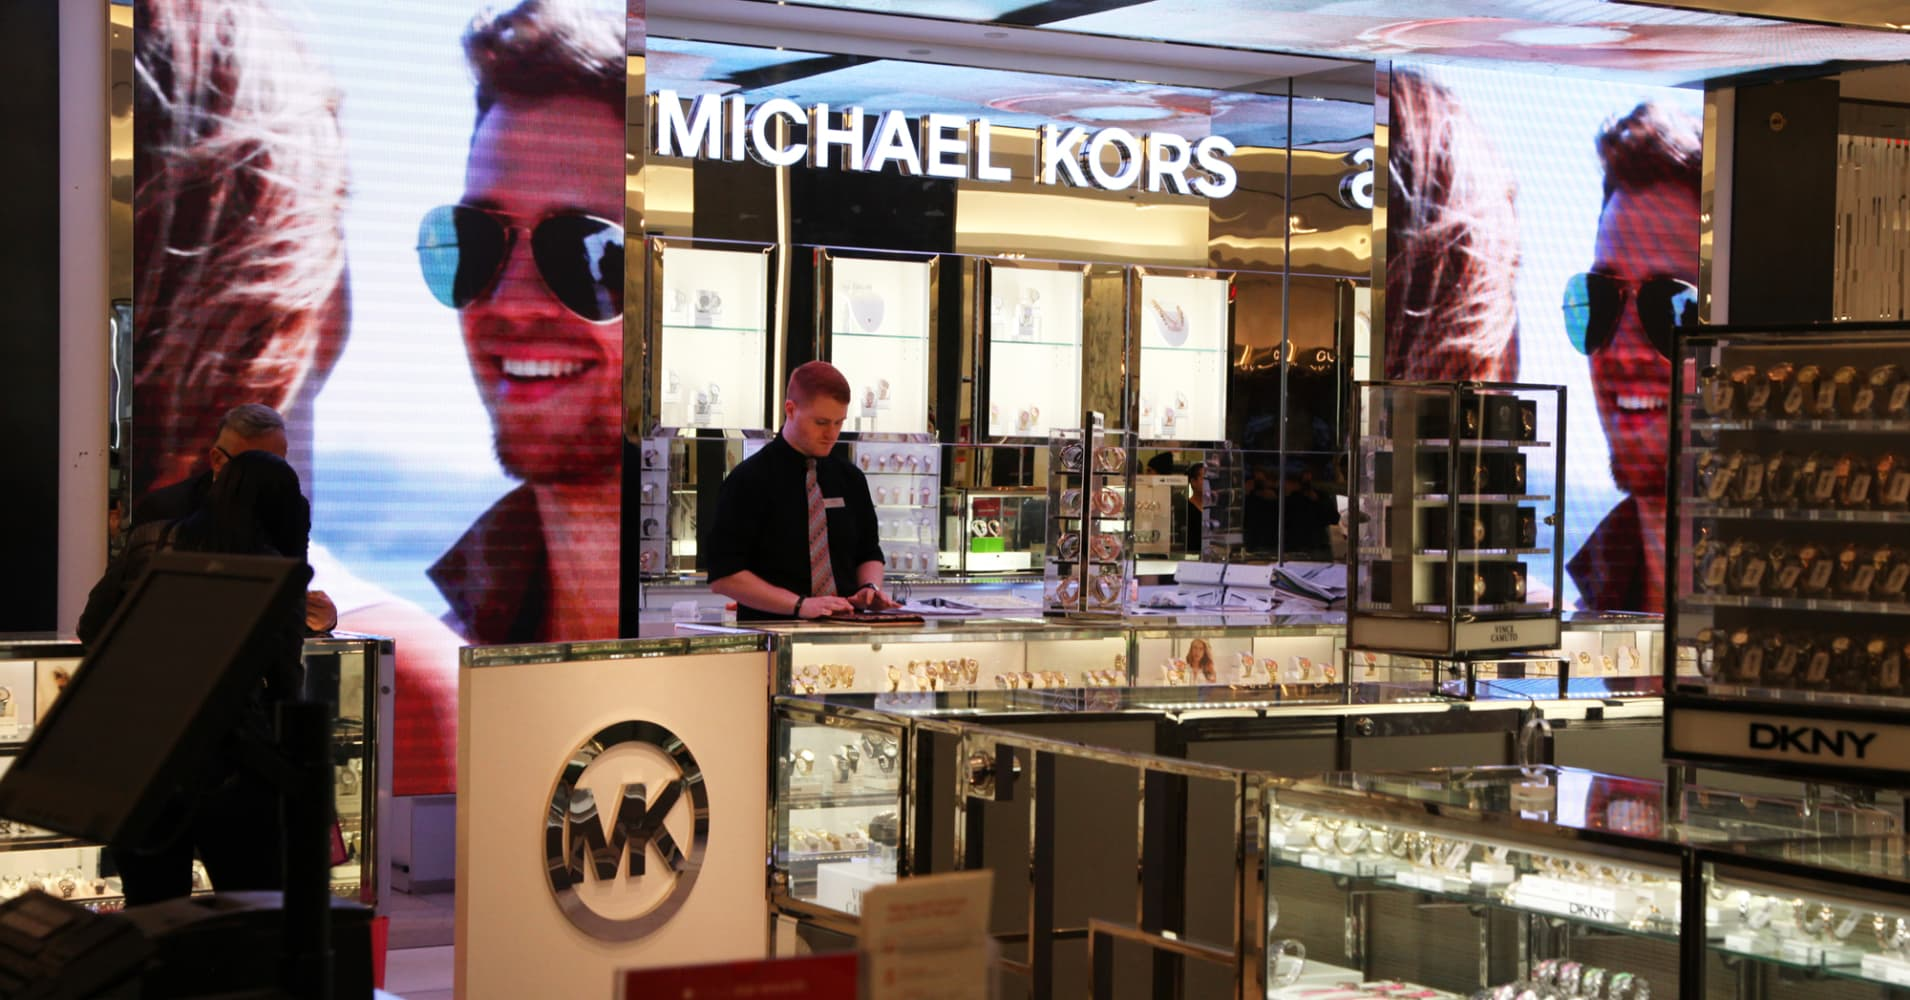 A Michael Kors counter at Macy's